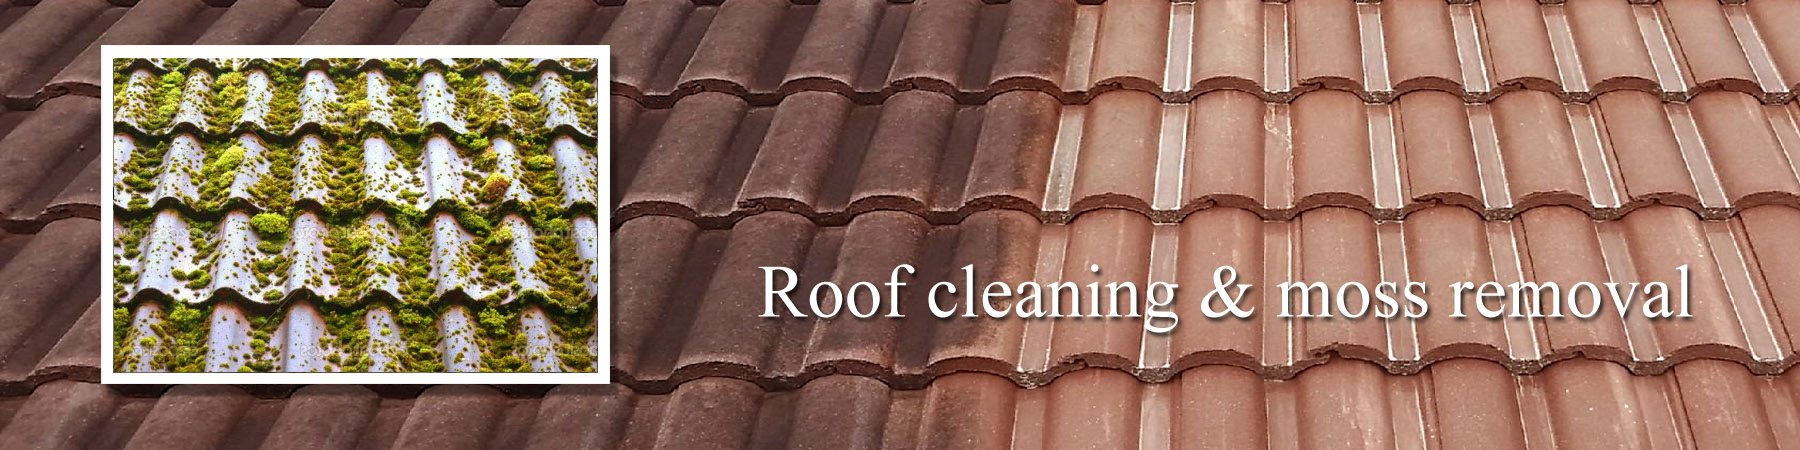 J.R. Roof Cleaning Petts Wood roof moss removal repairs & coating J R Cleaning